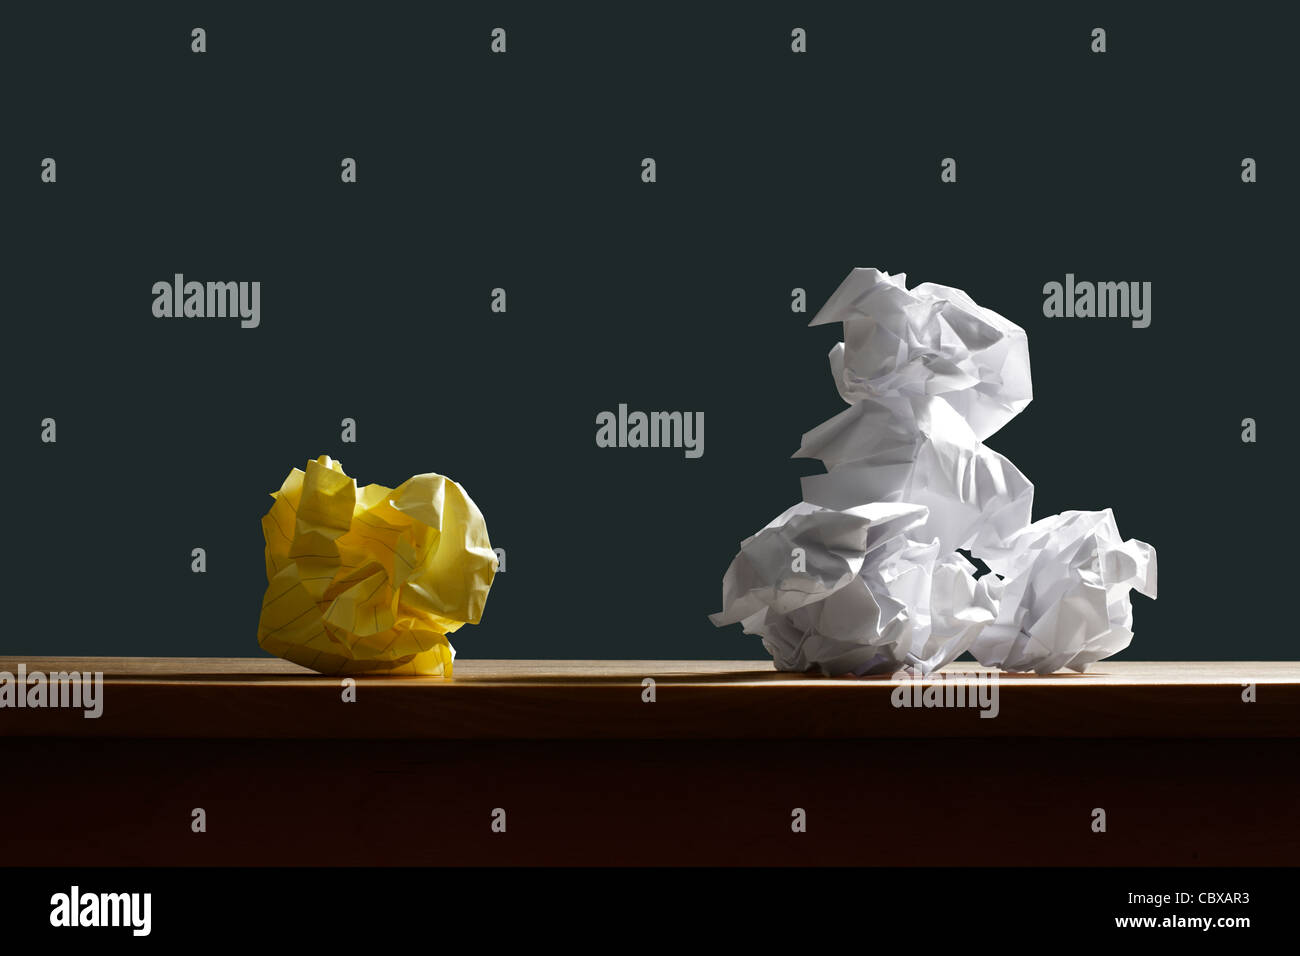 Crumpled paper on desk - Stock Image